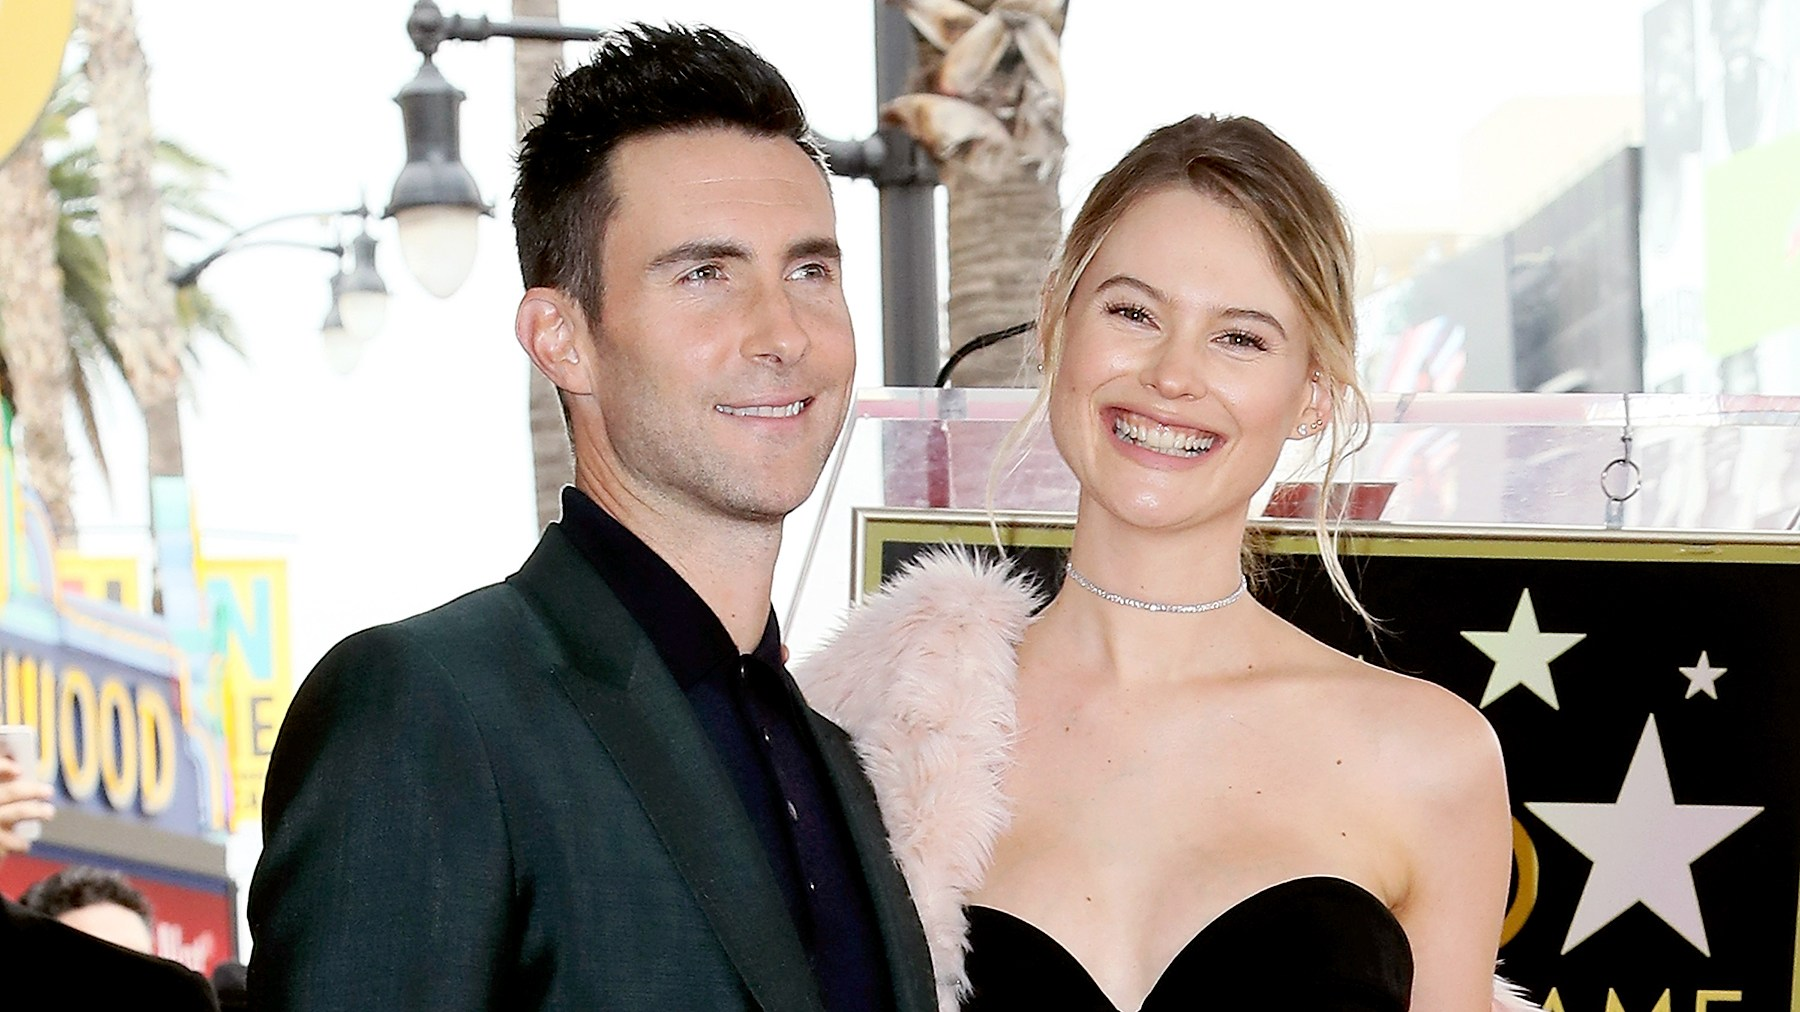 Adam Levine and Behati Prinsloo attend his being honored with a Star on the Hollywood Walk of Fame on February 10, 2017 in Hollywood, California.